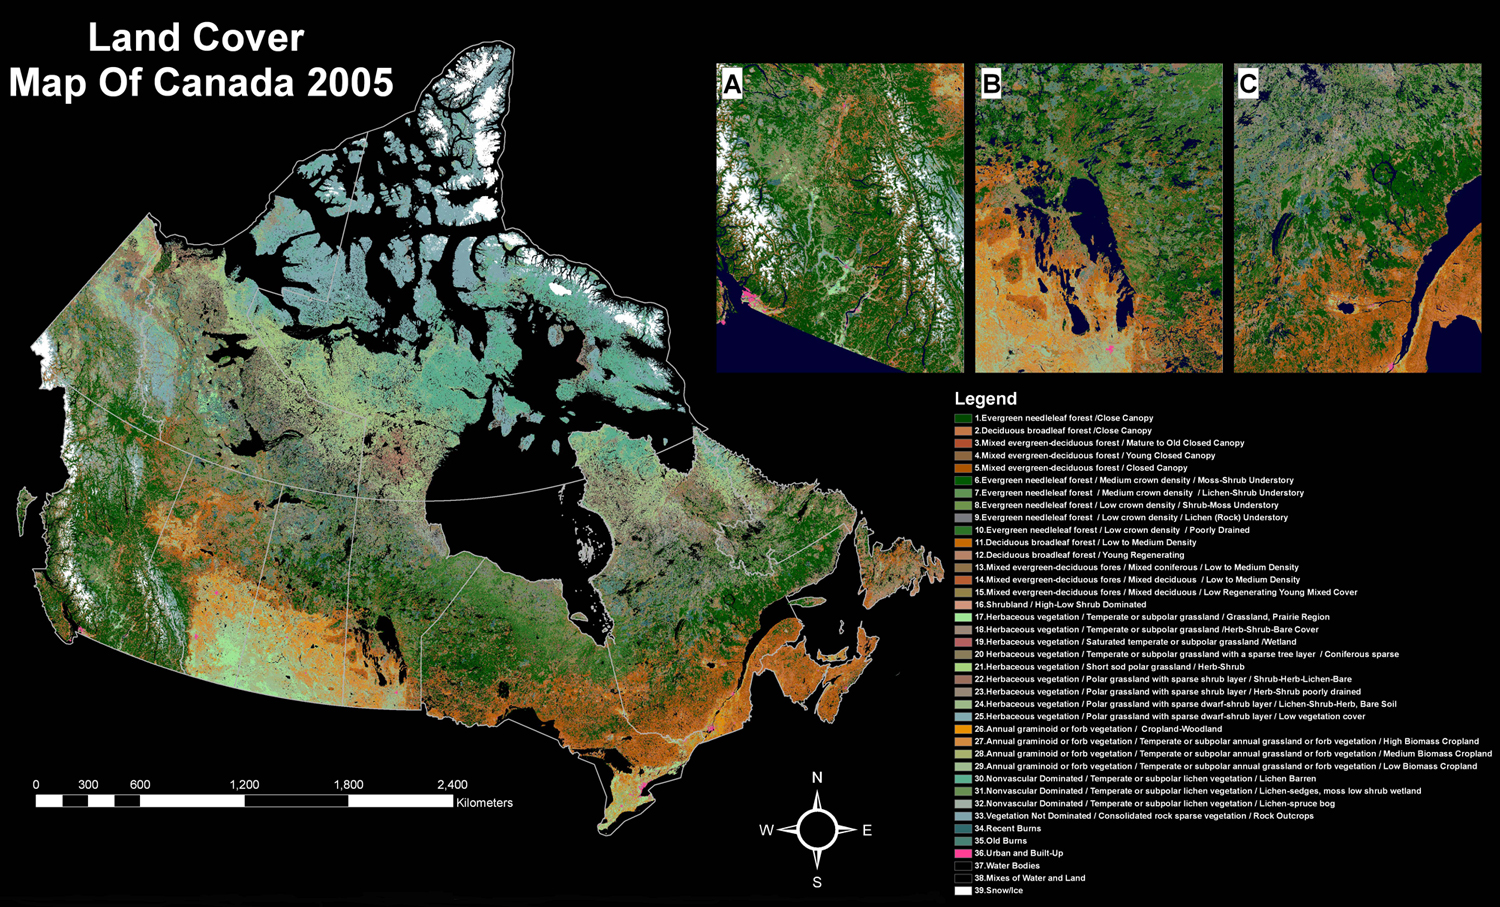 This map shows the status of land cover across Canada in 2005. As noted in the text, an important set of satellite images were geometrically and radiometrically corrected, refined and integrated to generate this product. This map includes a legend covering 39 items, most of which refer to various types of plant coverage.